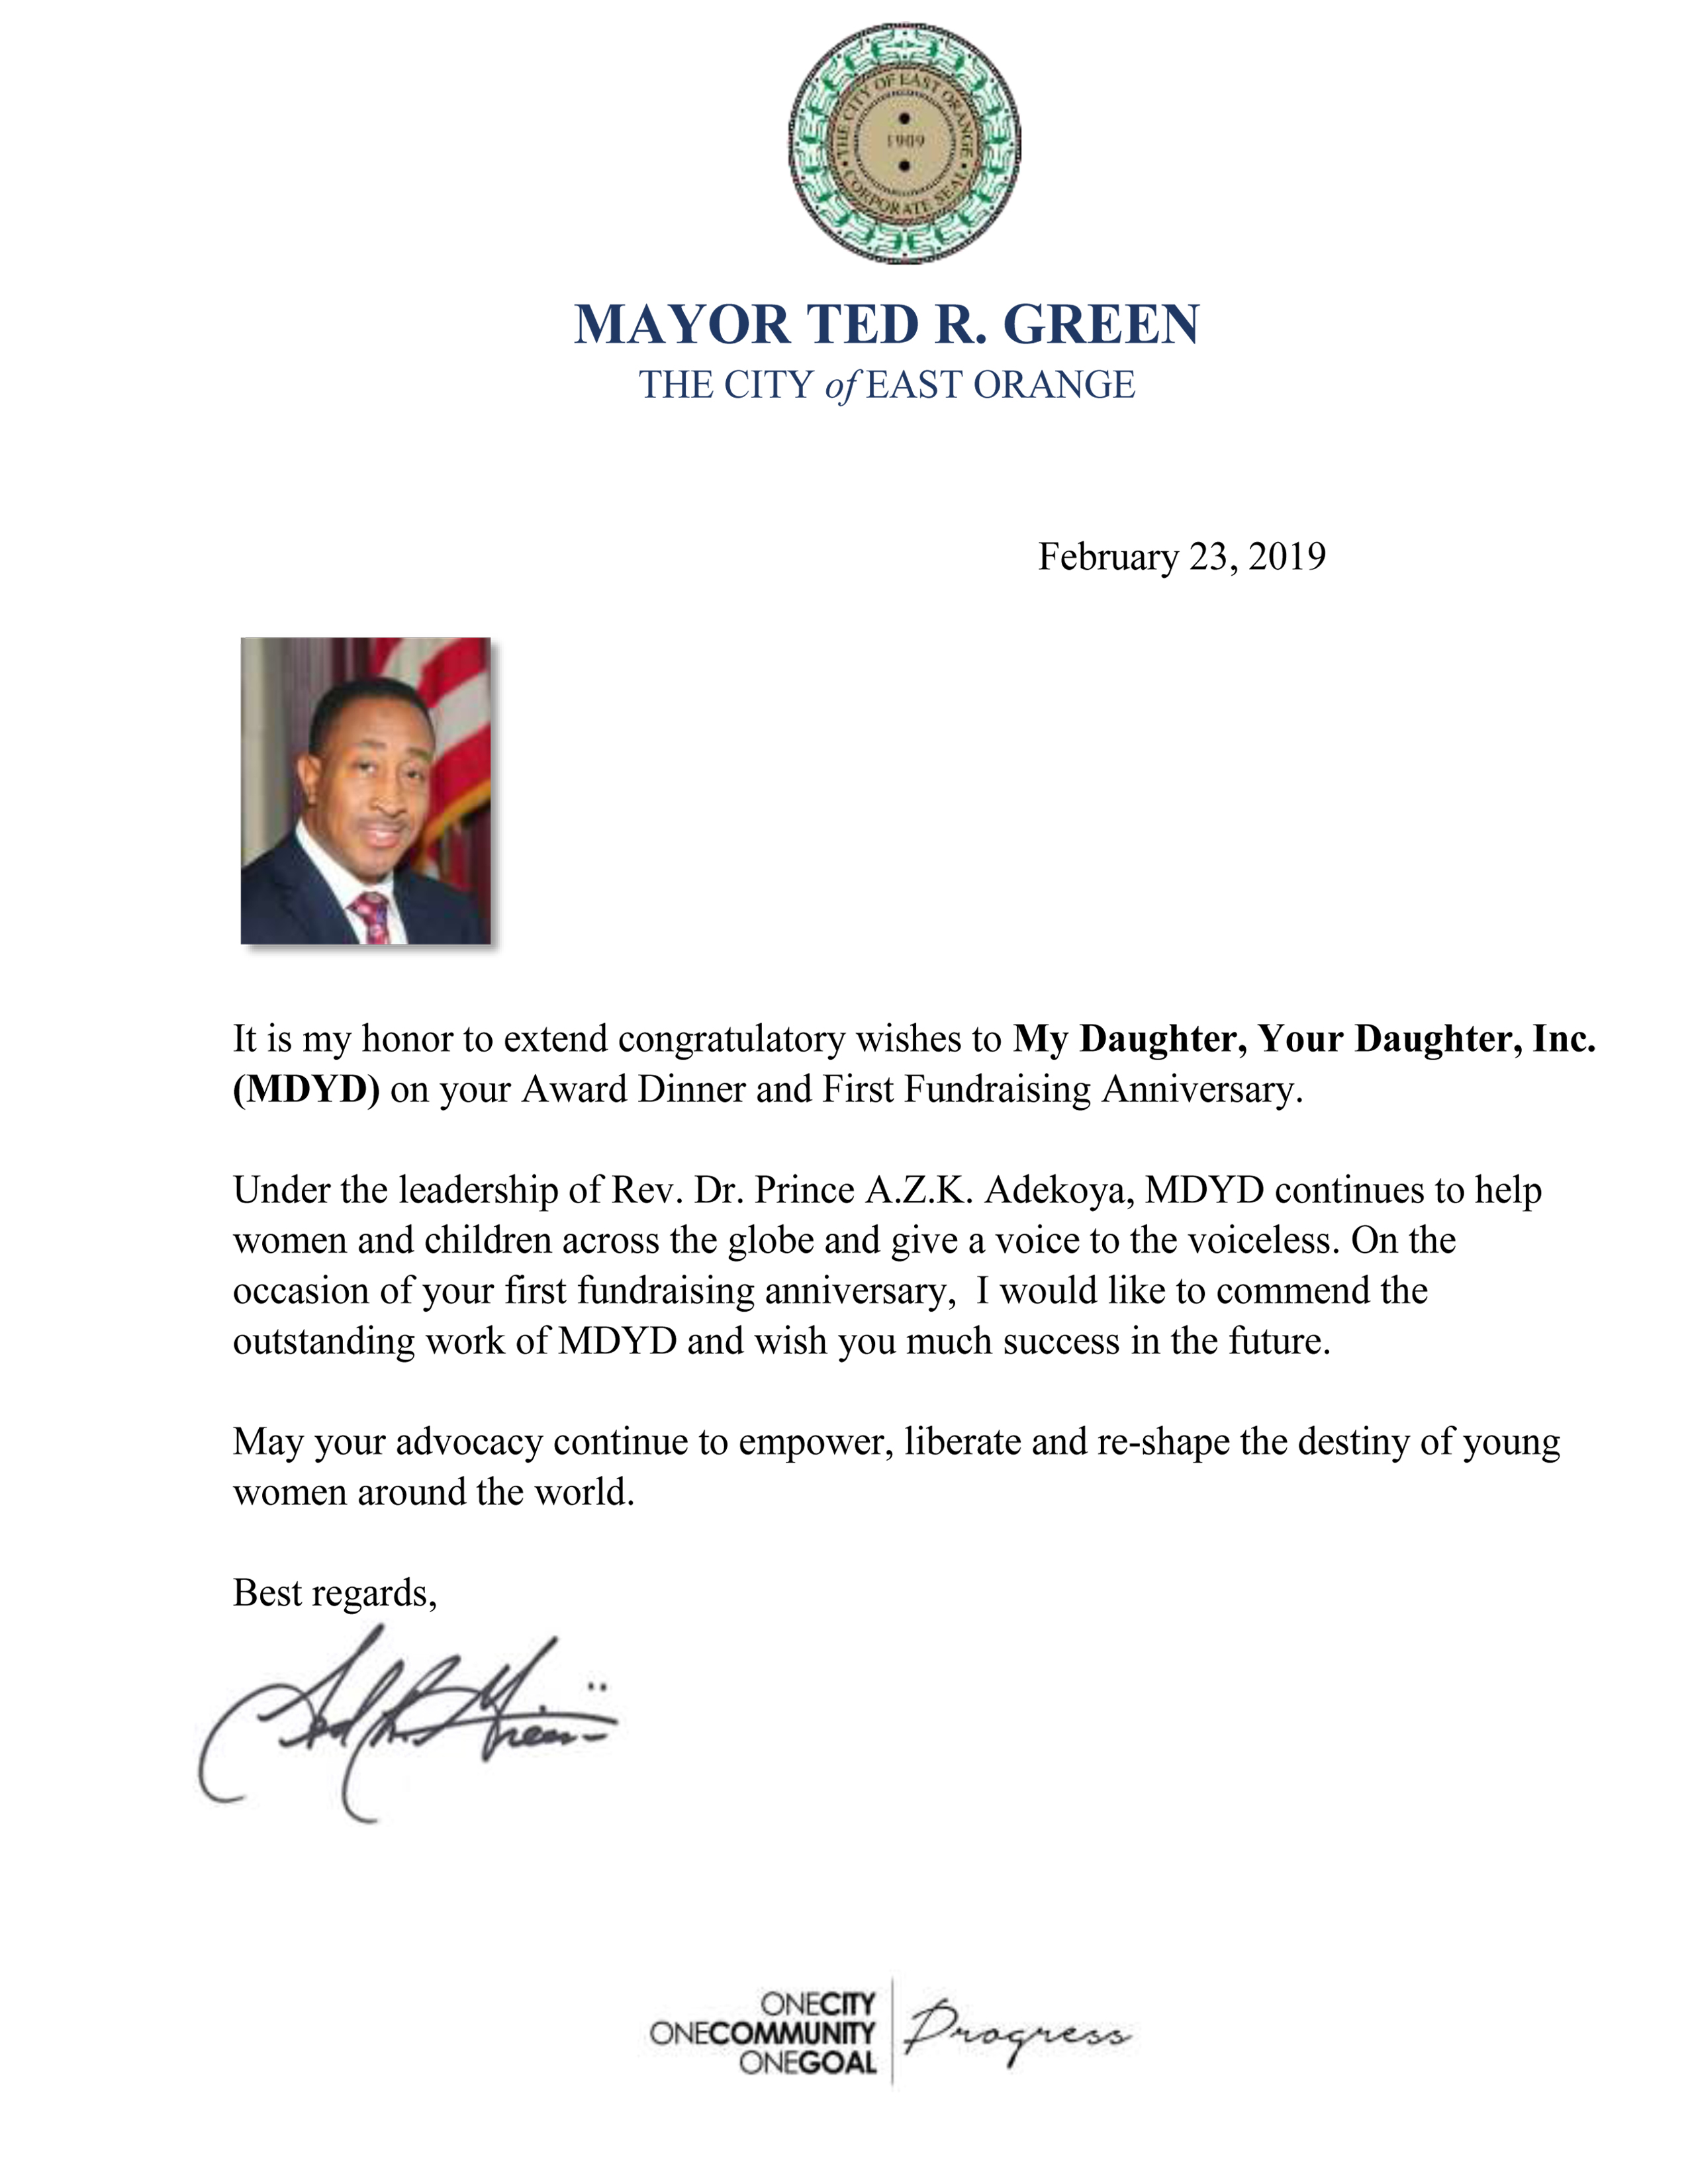 Letter from Mayor Ted Green